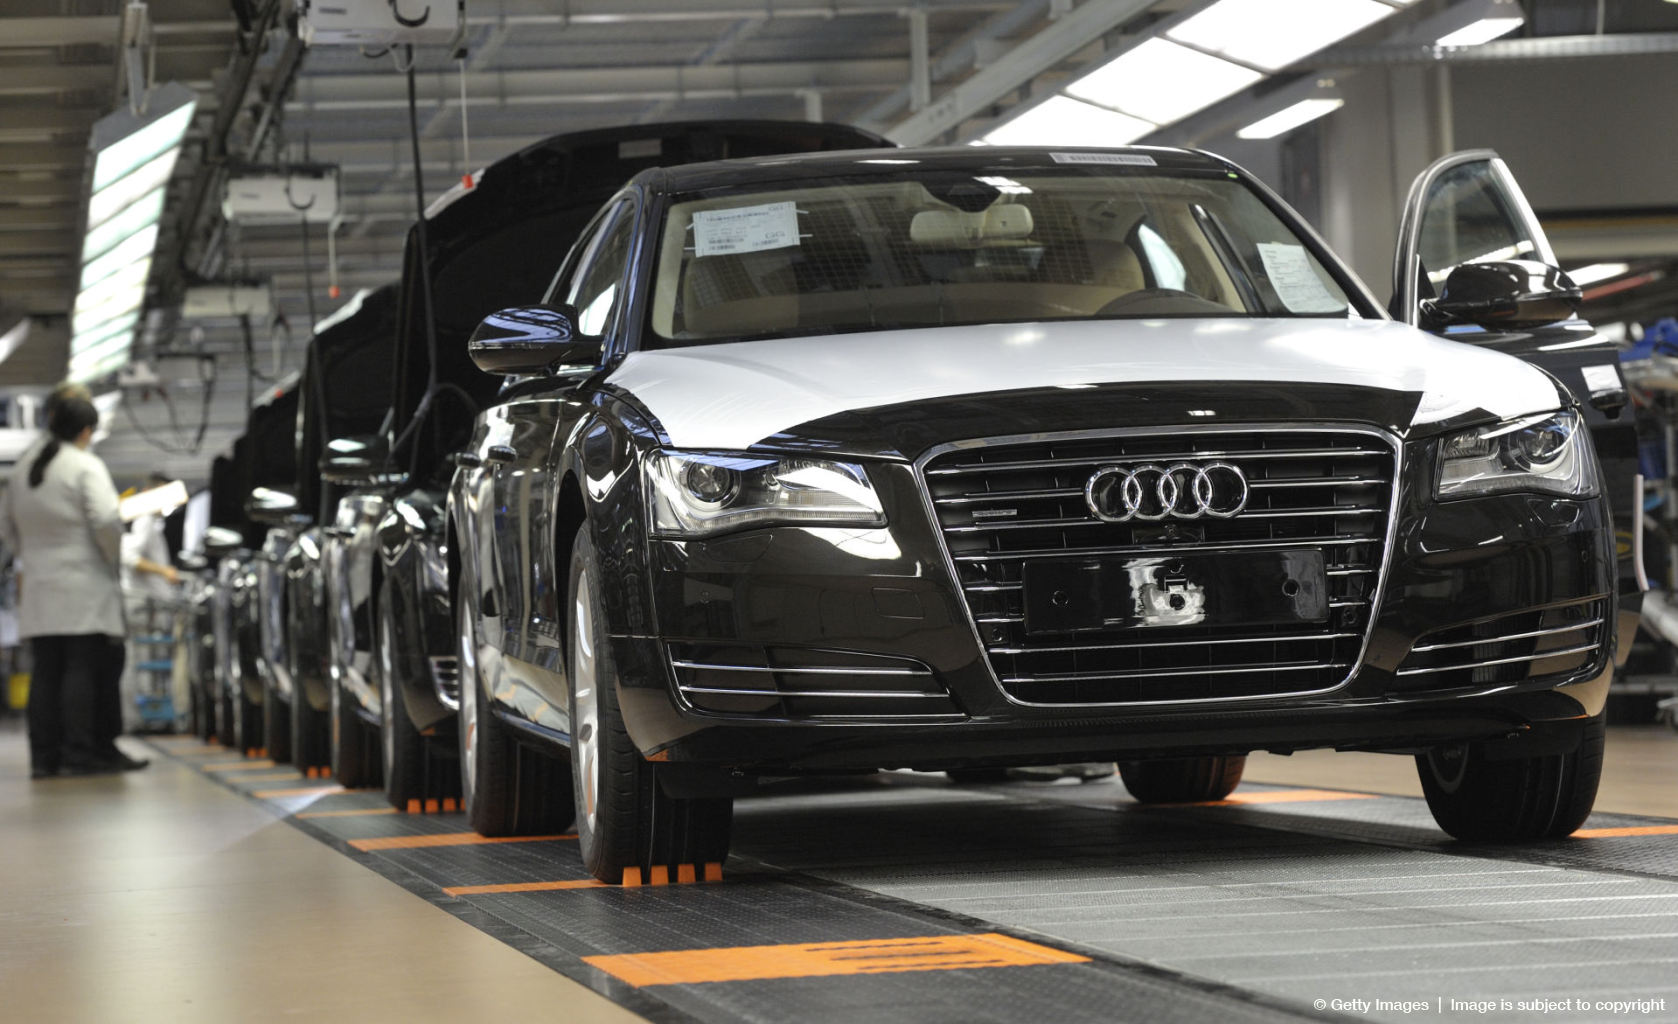 Audi A8 cars are pictured at the assembl